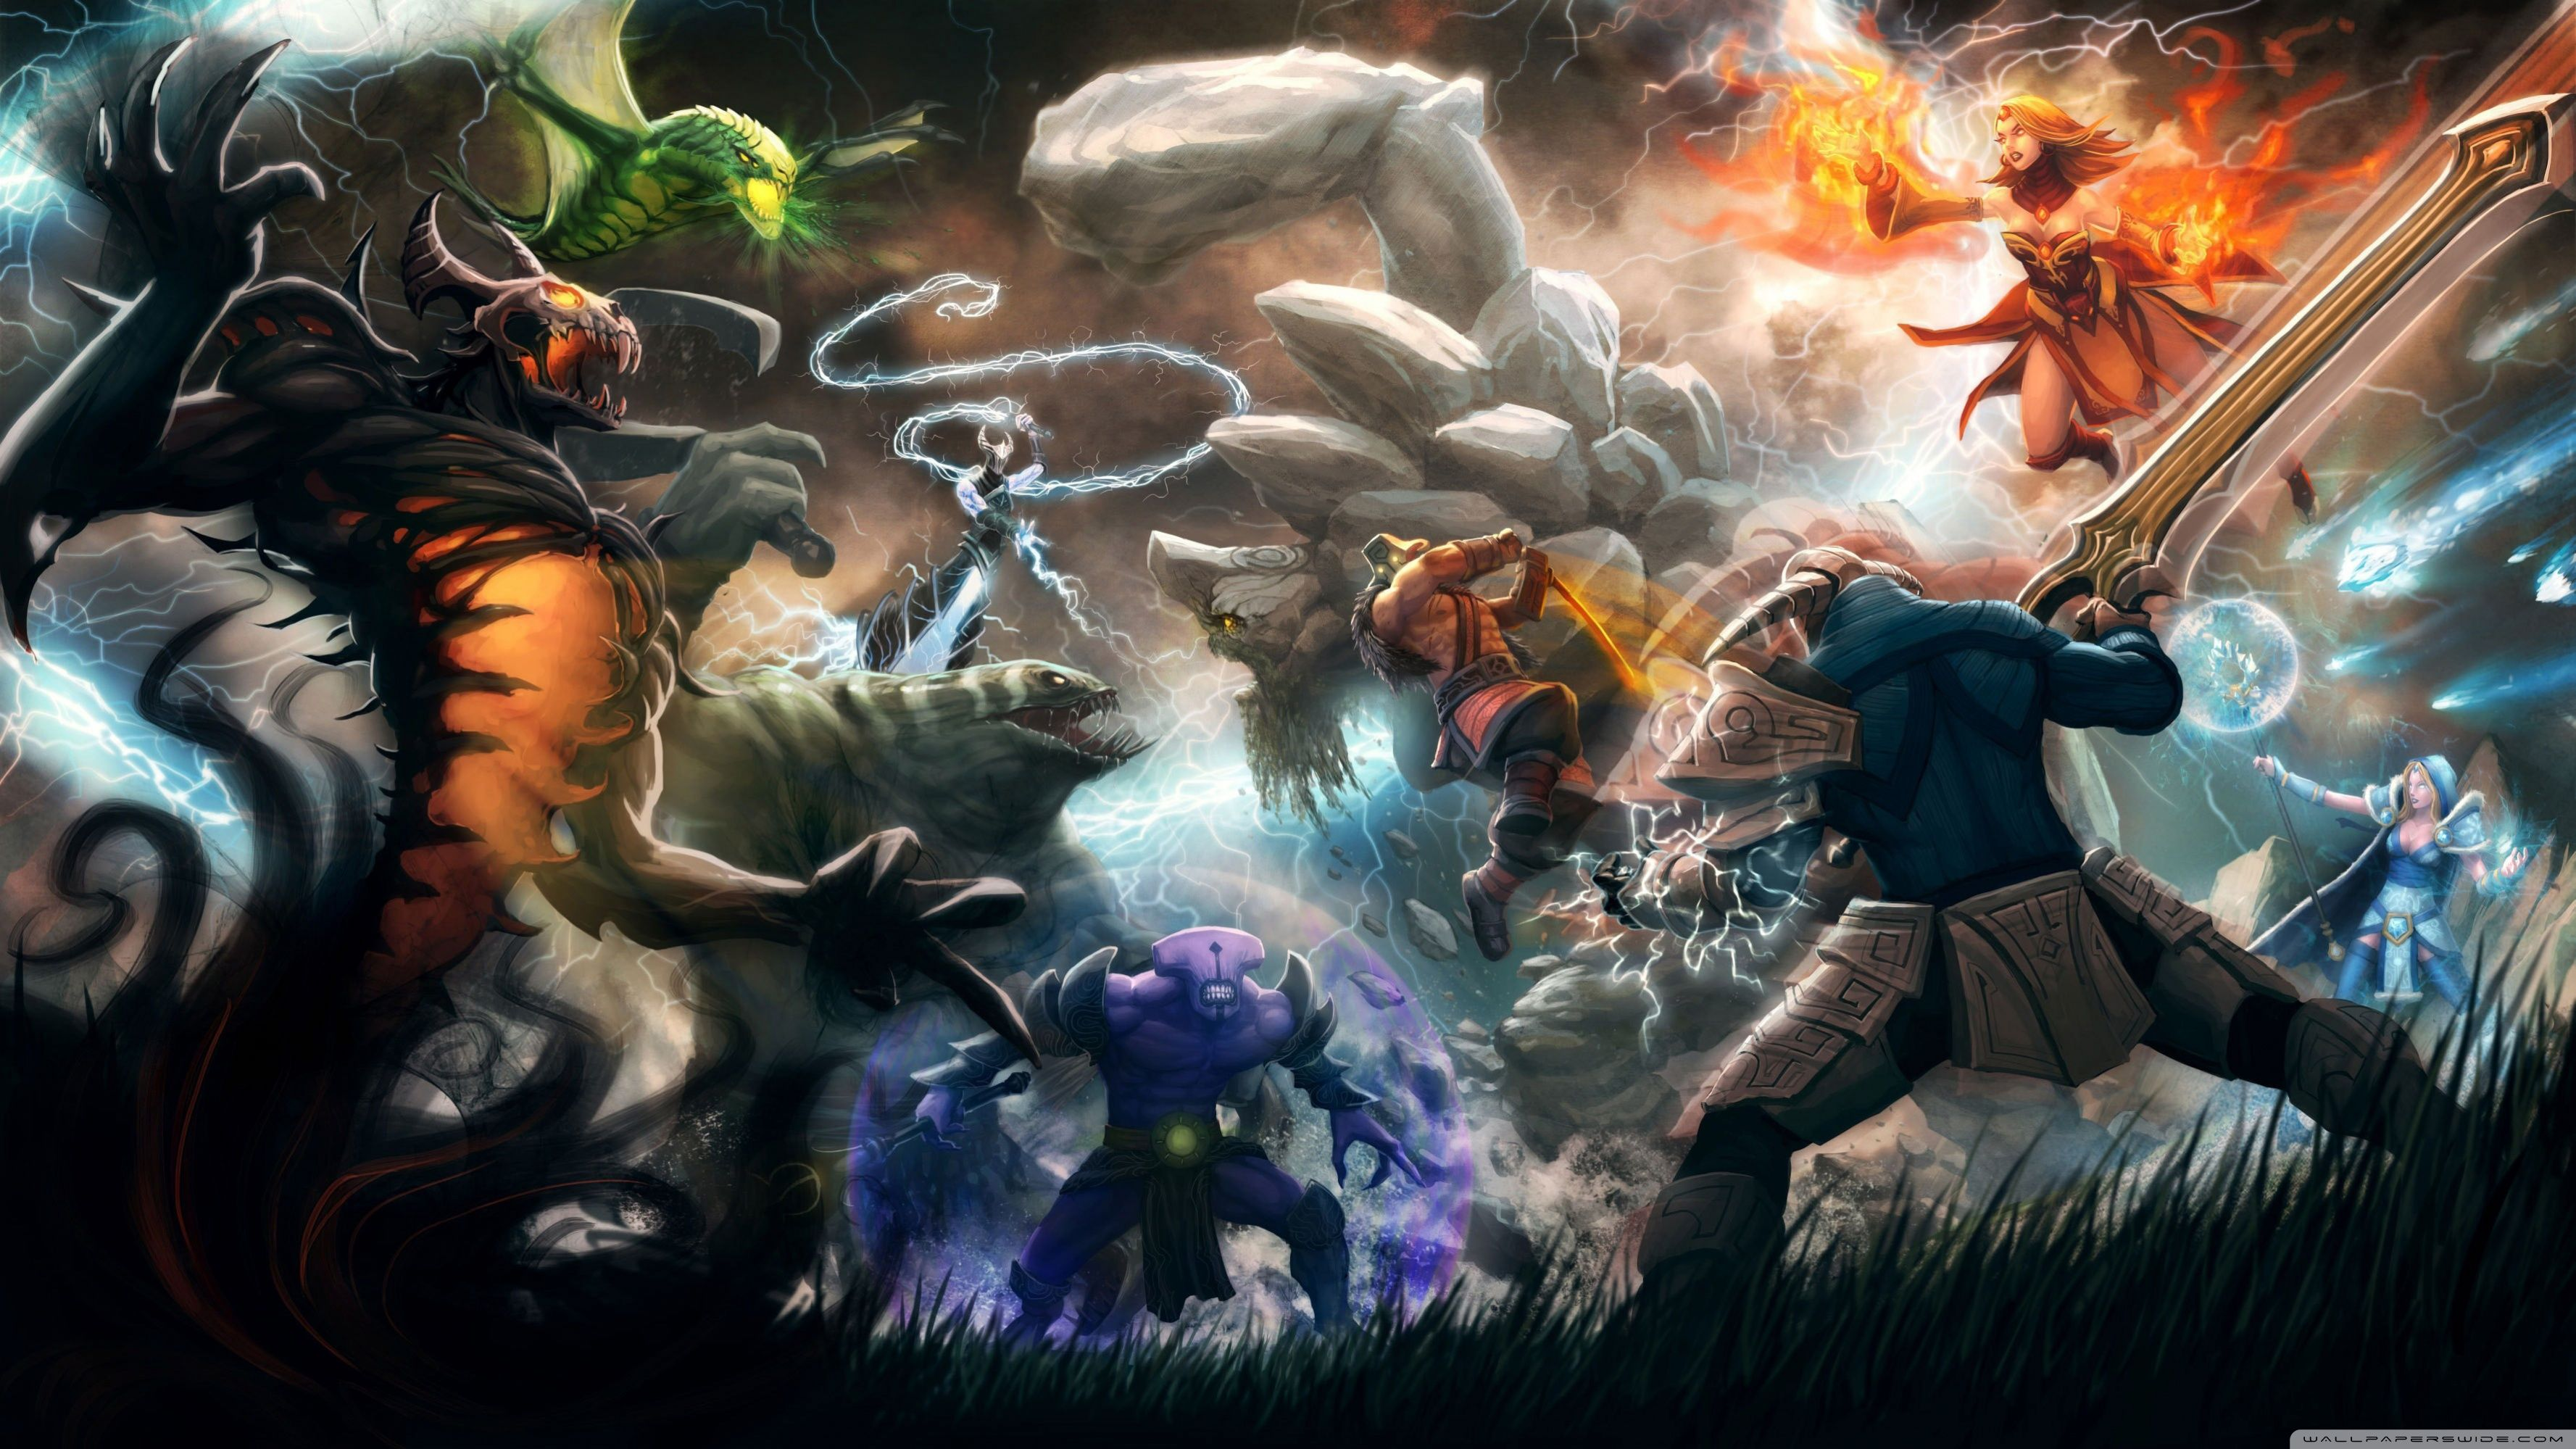 Dota2 wallpaper pc wallpapers gallery tactical gaming - Dota Wallpapers Hd Desktop Backgrounds Images And Pictures